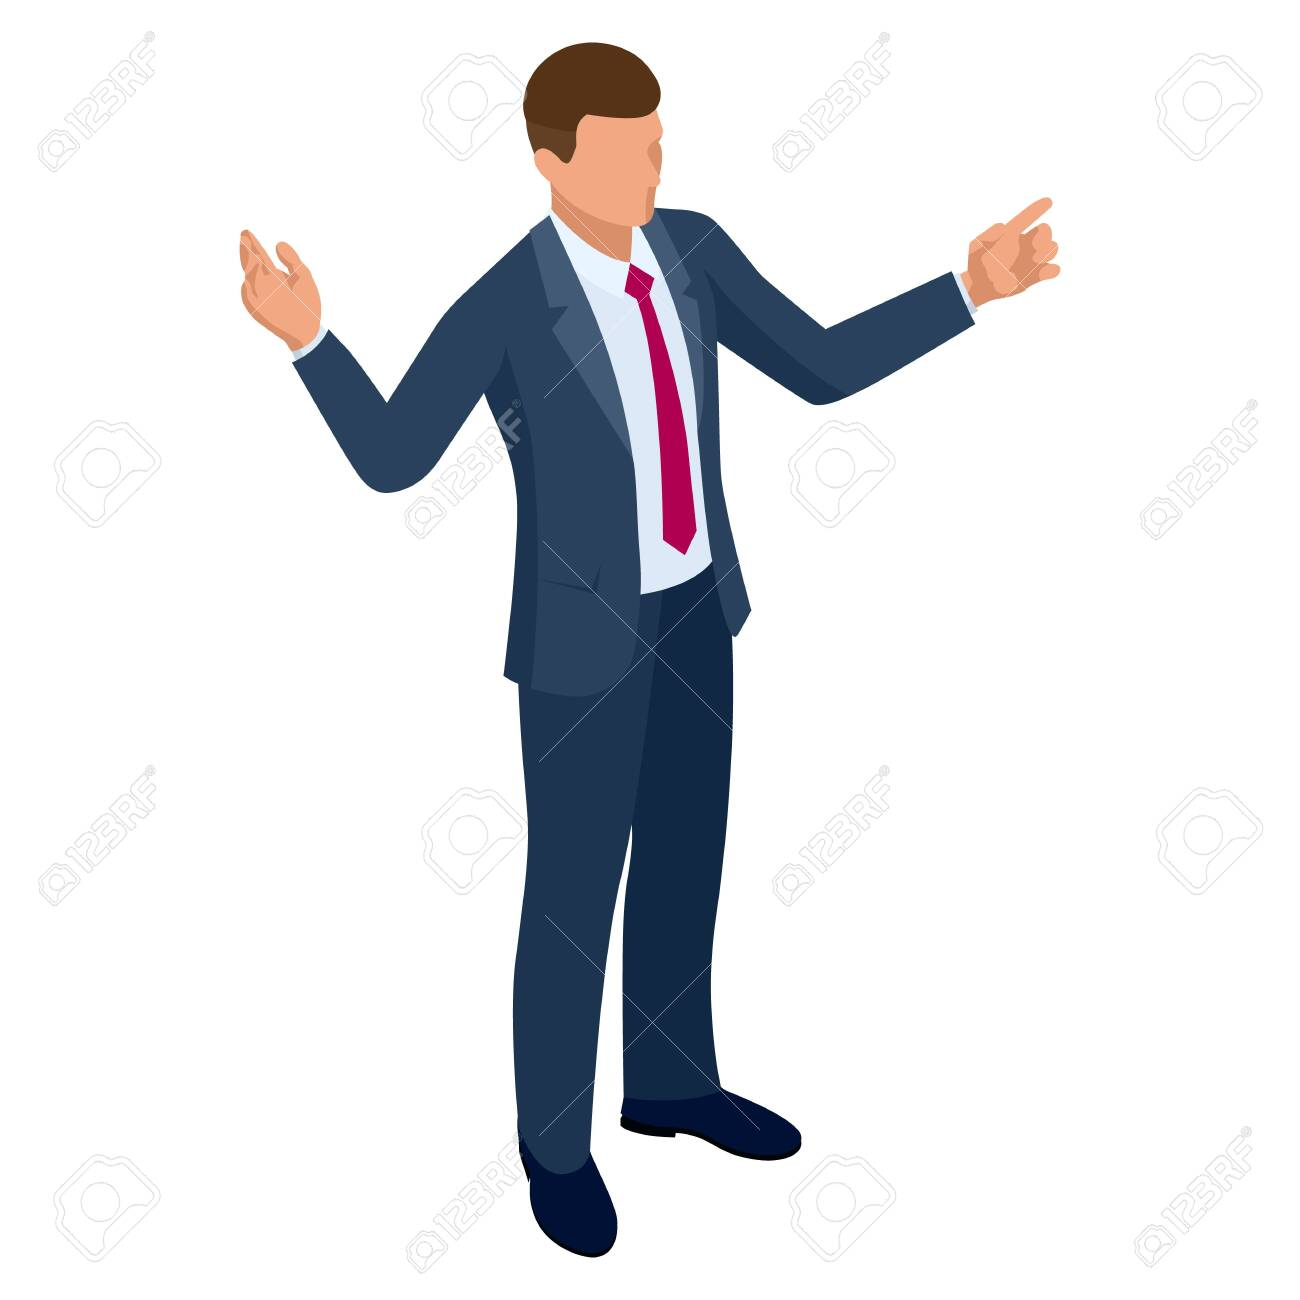 Isometric businessman isolated on write. Creating an office worker character, cartoon people. Business people. - 149607555